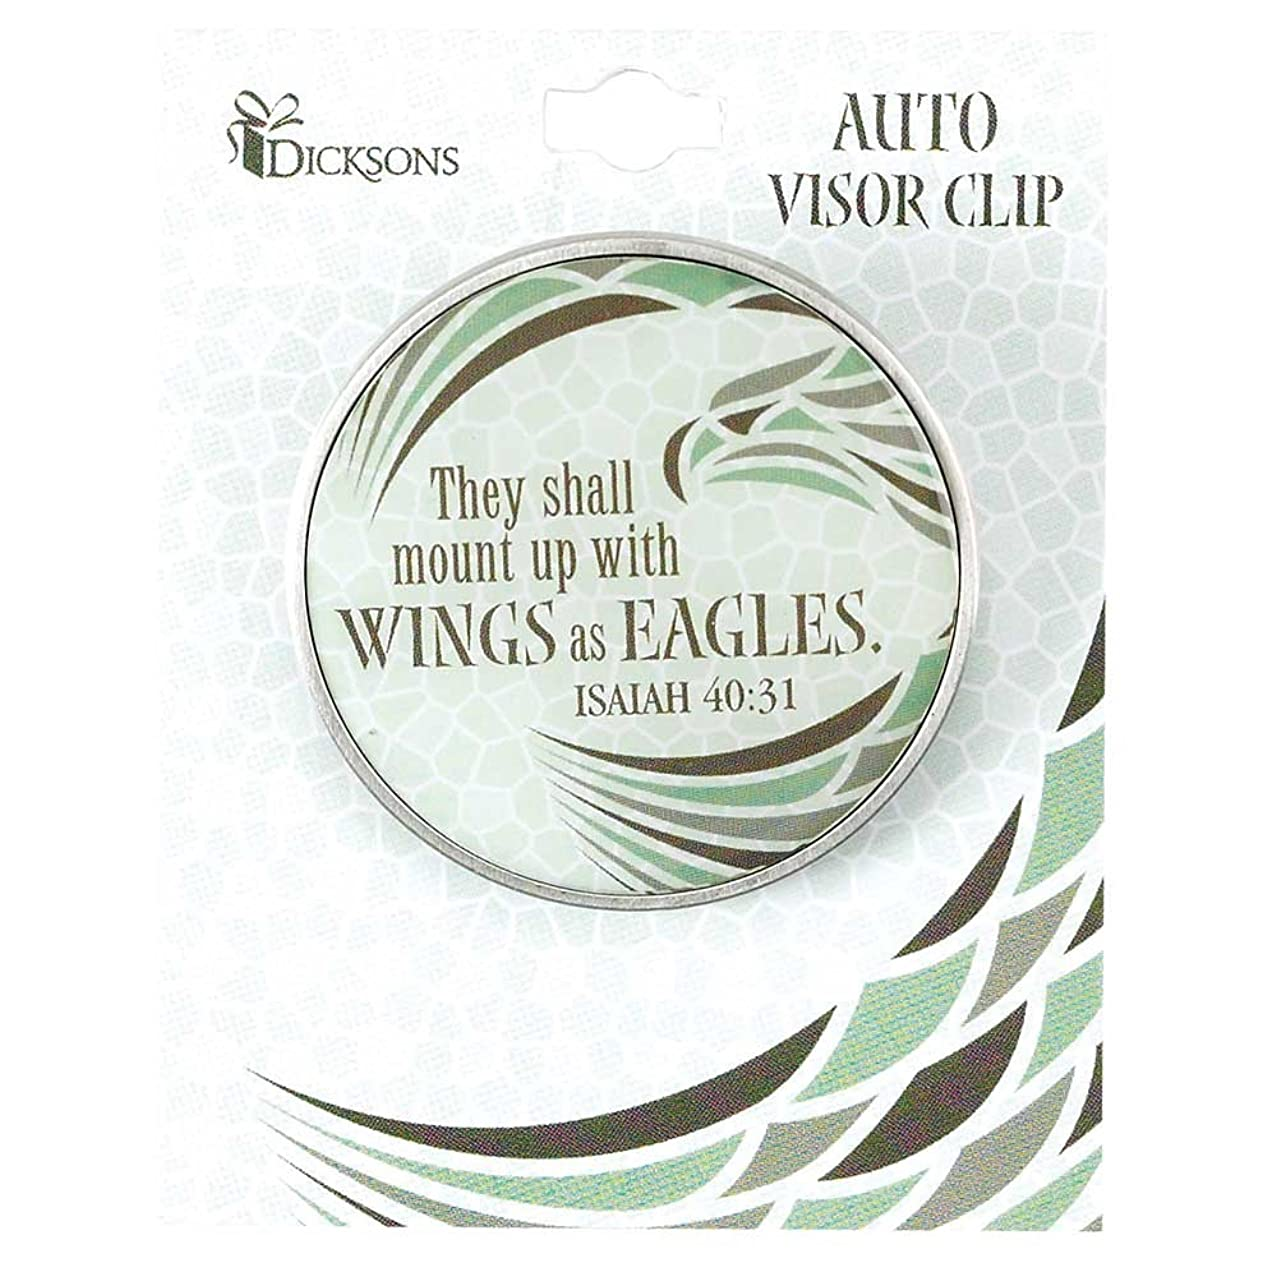 Wings as Eagles Isaiah 40:31 Scripture Christian Metal Car Auto Visor Clip